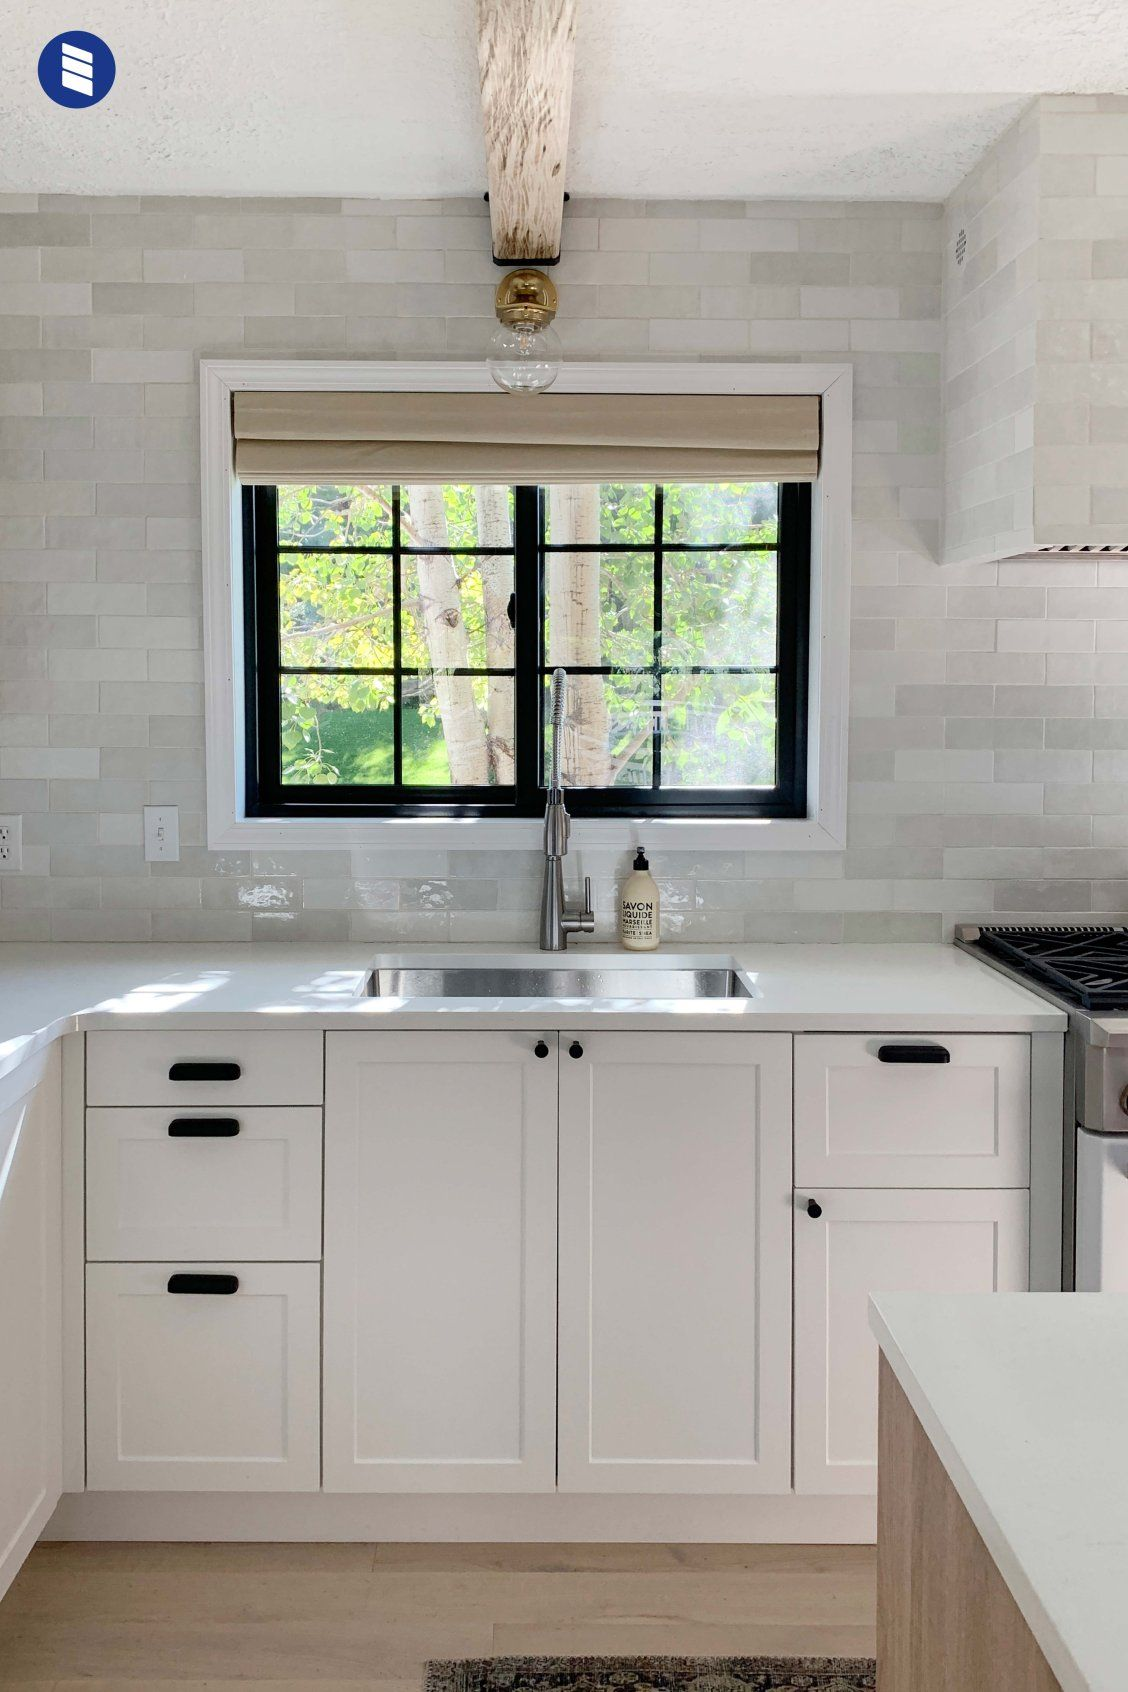 Chris Loves Julia S Kitchen Makeover Choosing Shades That Compliment Your View Instead Of Covering It Blinds Com Appartment Decor Kitchen Shades Kitchen Renovation Inspiration